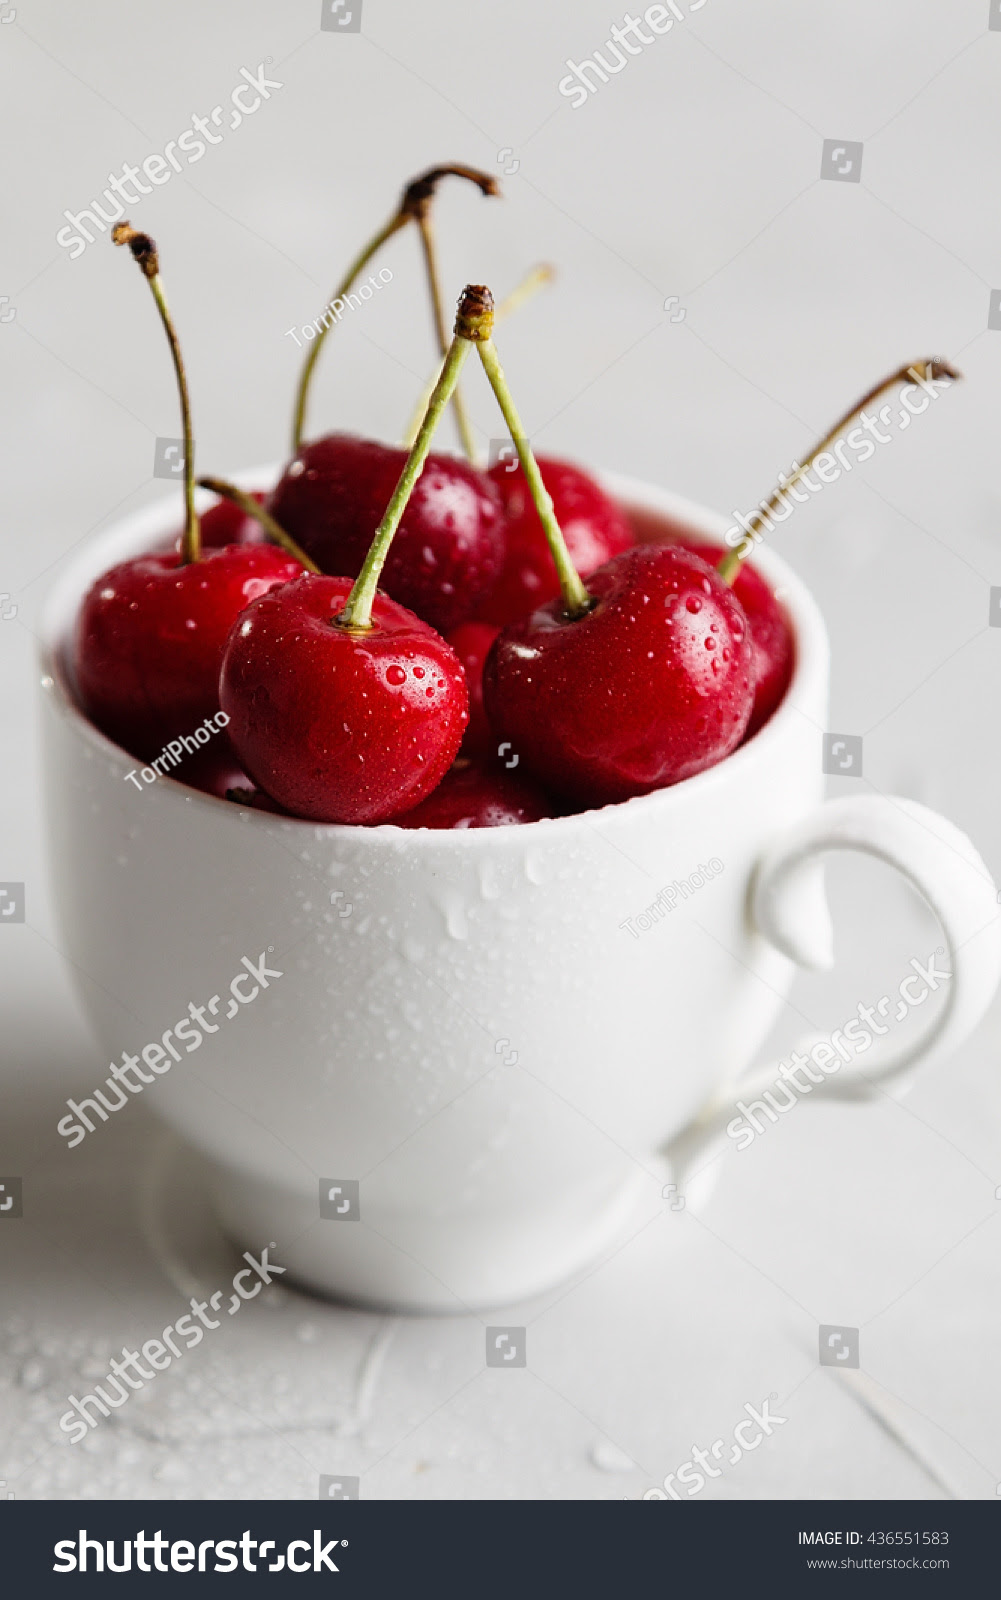 berry, breakfast, cherry, closeup, contrast, cup, dark, delicious, dessert, diet, drop, focus, food, fresh, freshness, fruit, gourmet, gray, group, healthy, juice, juicy, kitchen, lot, many, meal, morning, mug, natural, nature, neutral, organic, raw, red, ripe, shallow, summer, sweet, tasty, useful, vegetarian, vitamin, water, wet, white